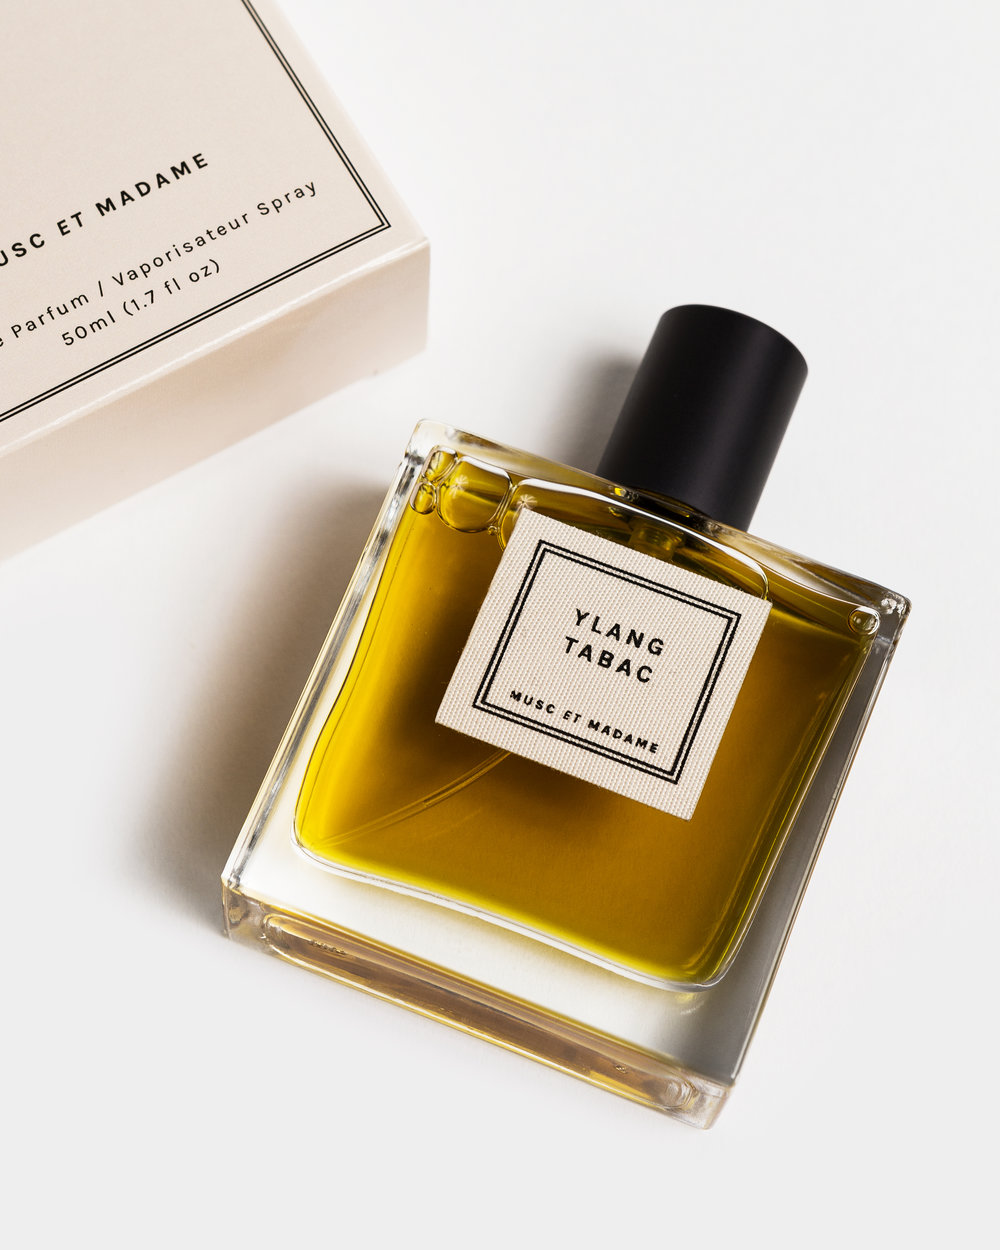 MUSC  ET  MADAME   Warm and intimate, Musc et Madame is a niche fragrance line with a voluptuous mystique.  Their hypnotic parfums pair floral absolutes with animalic musks, resulting in tousled, dirty florals that balance demure and dominant sensuality.